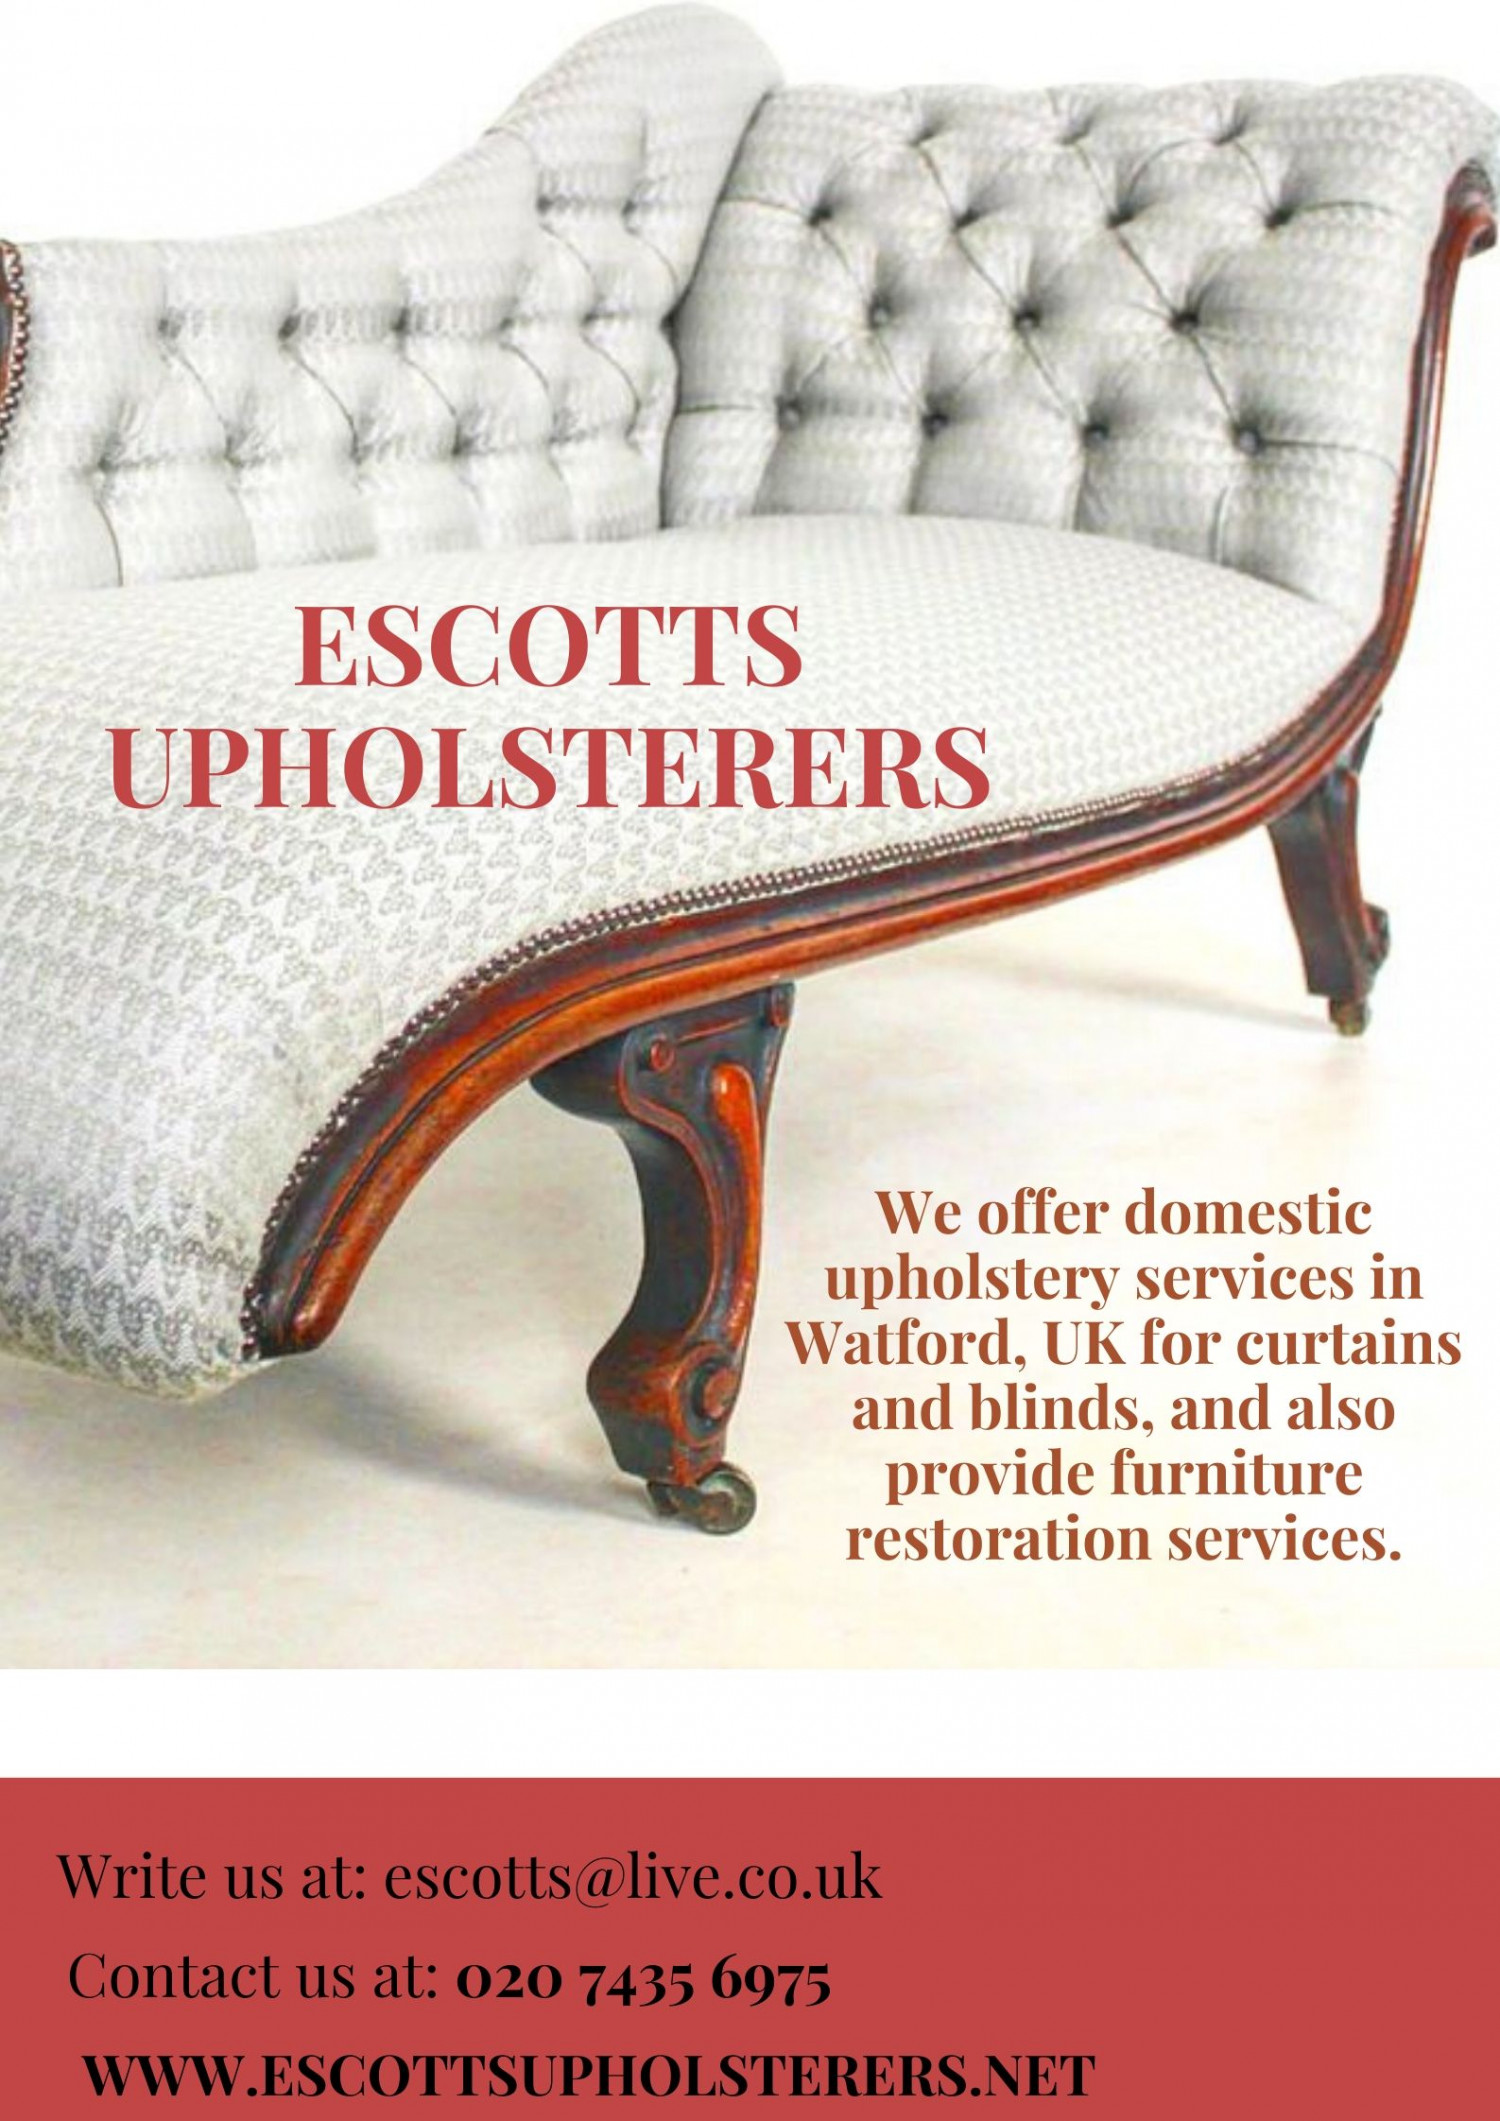 Want an upholstery service in Watford, UK? Infographic